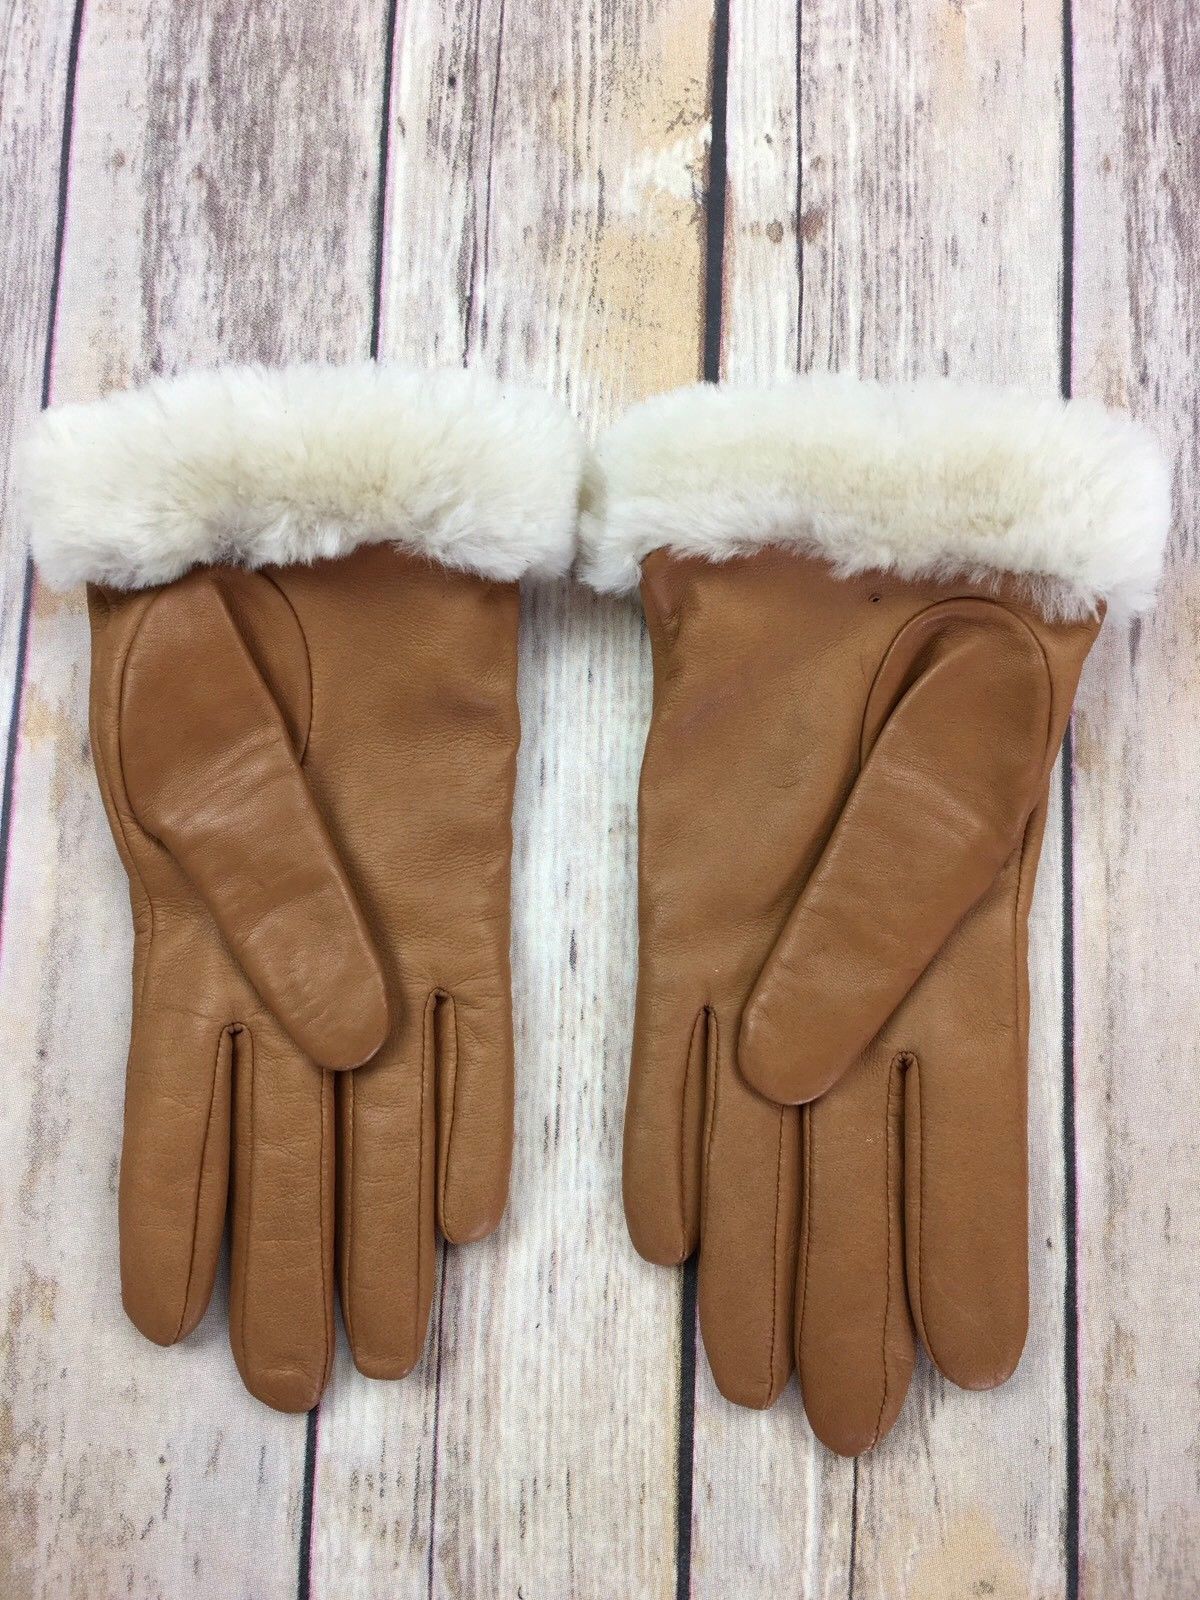 959447431 UGGS AUSTRALIA Gloves Classic Leather Smart Phone Glove Chestnut Shearling  S New